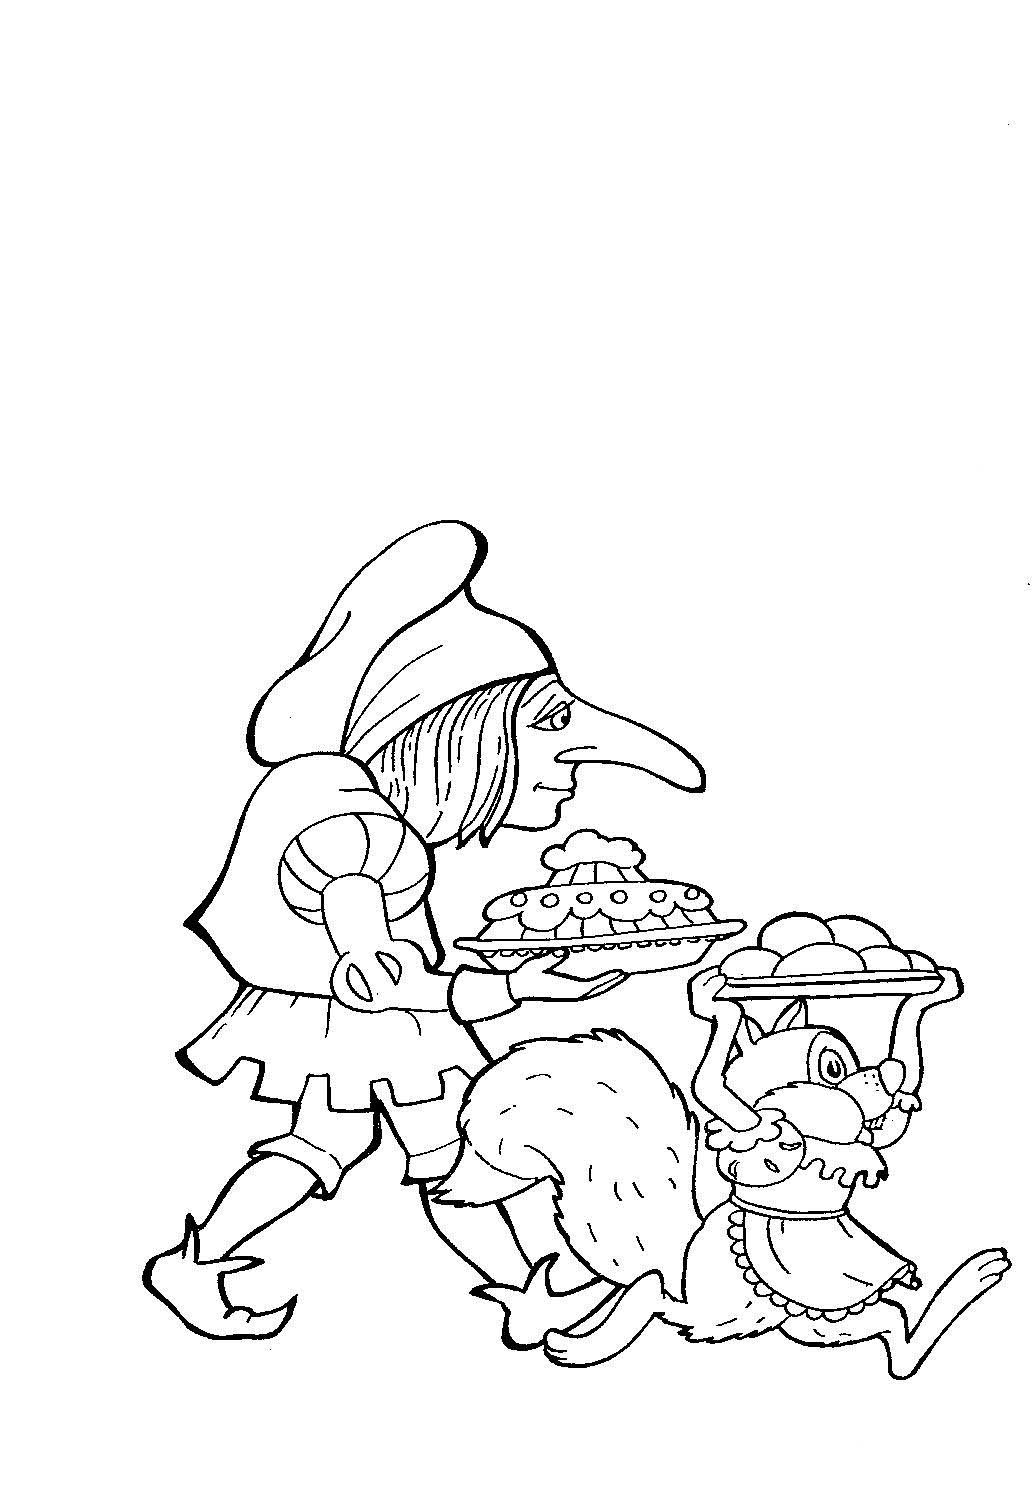 Dwarf nose coloring pages to download